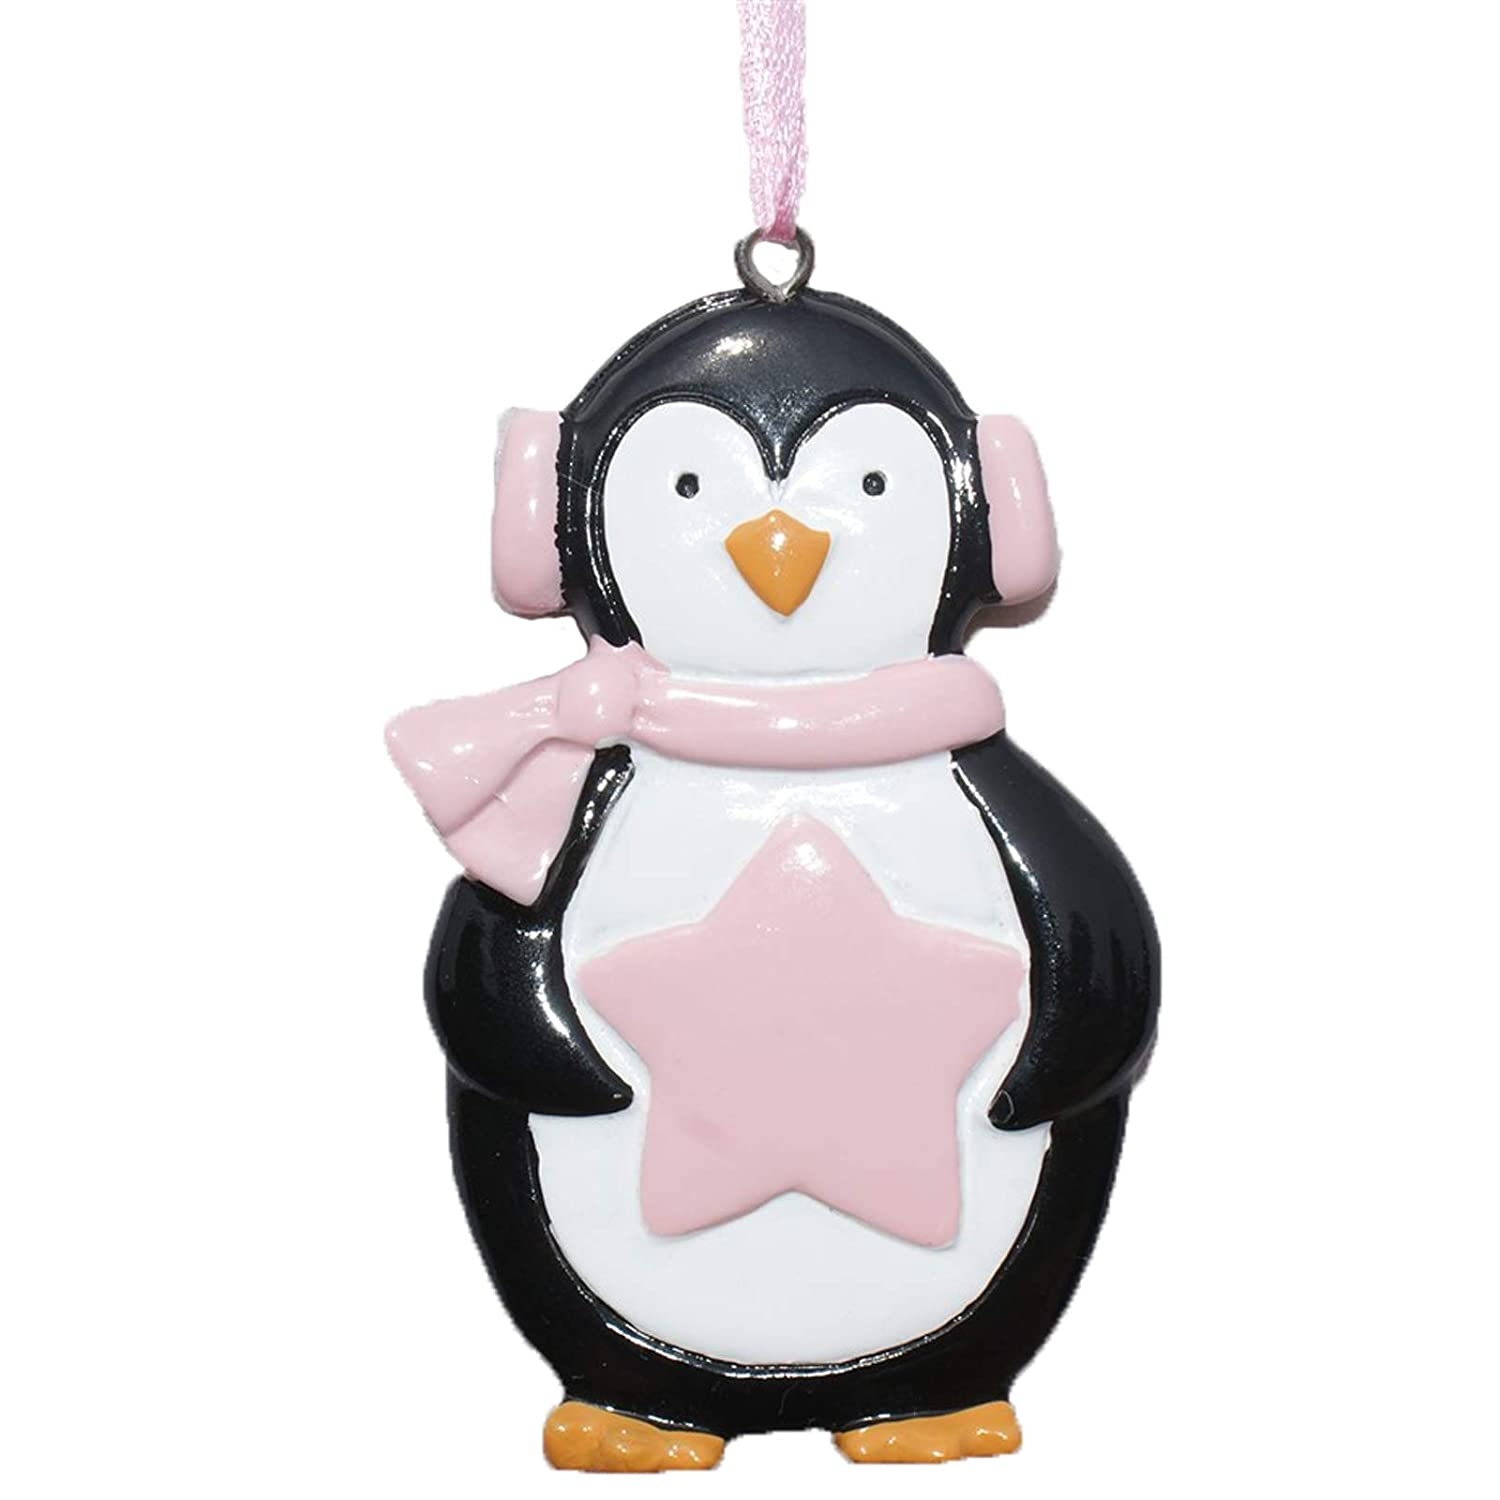 PERSONALISED & ENGRAVED GIRLS PINK STAR PENGUIN HAND PAINTED XMAS DECORATION - ANY NAME CAN BE ADDED (11 LETTERS MAX) (Name Only): Amazon.co.uk: Kitchen & ...